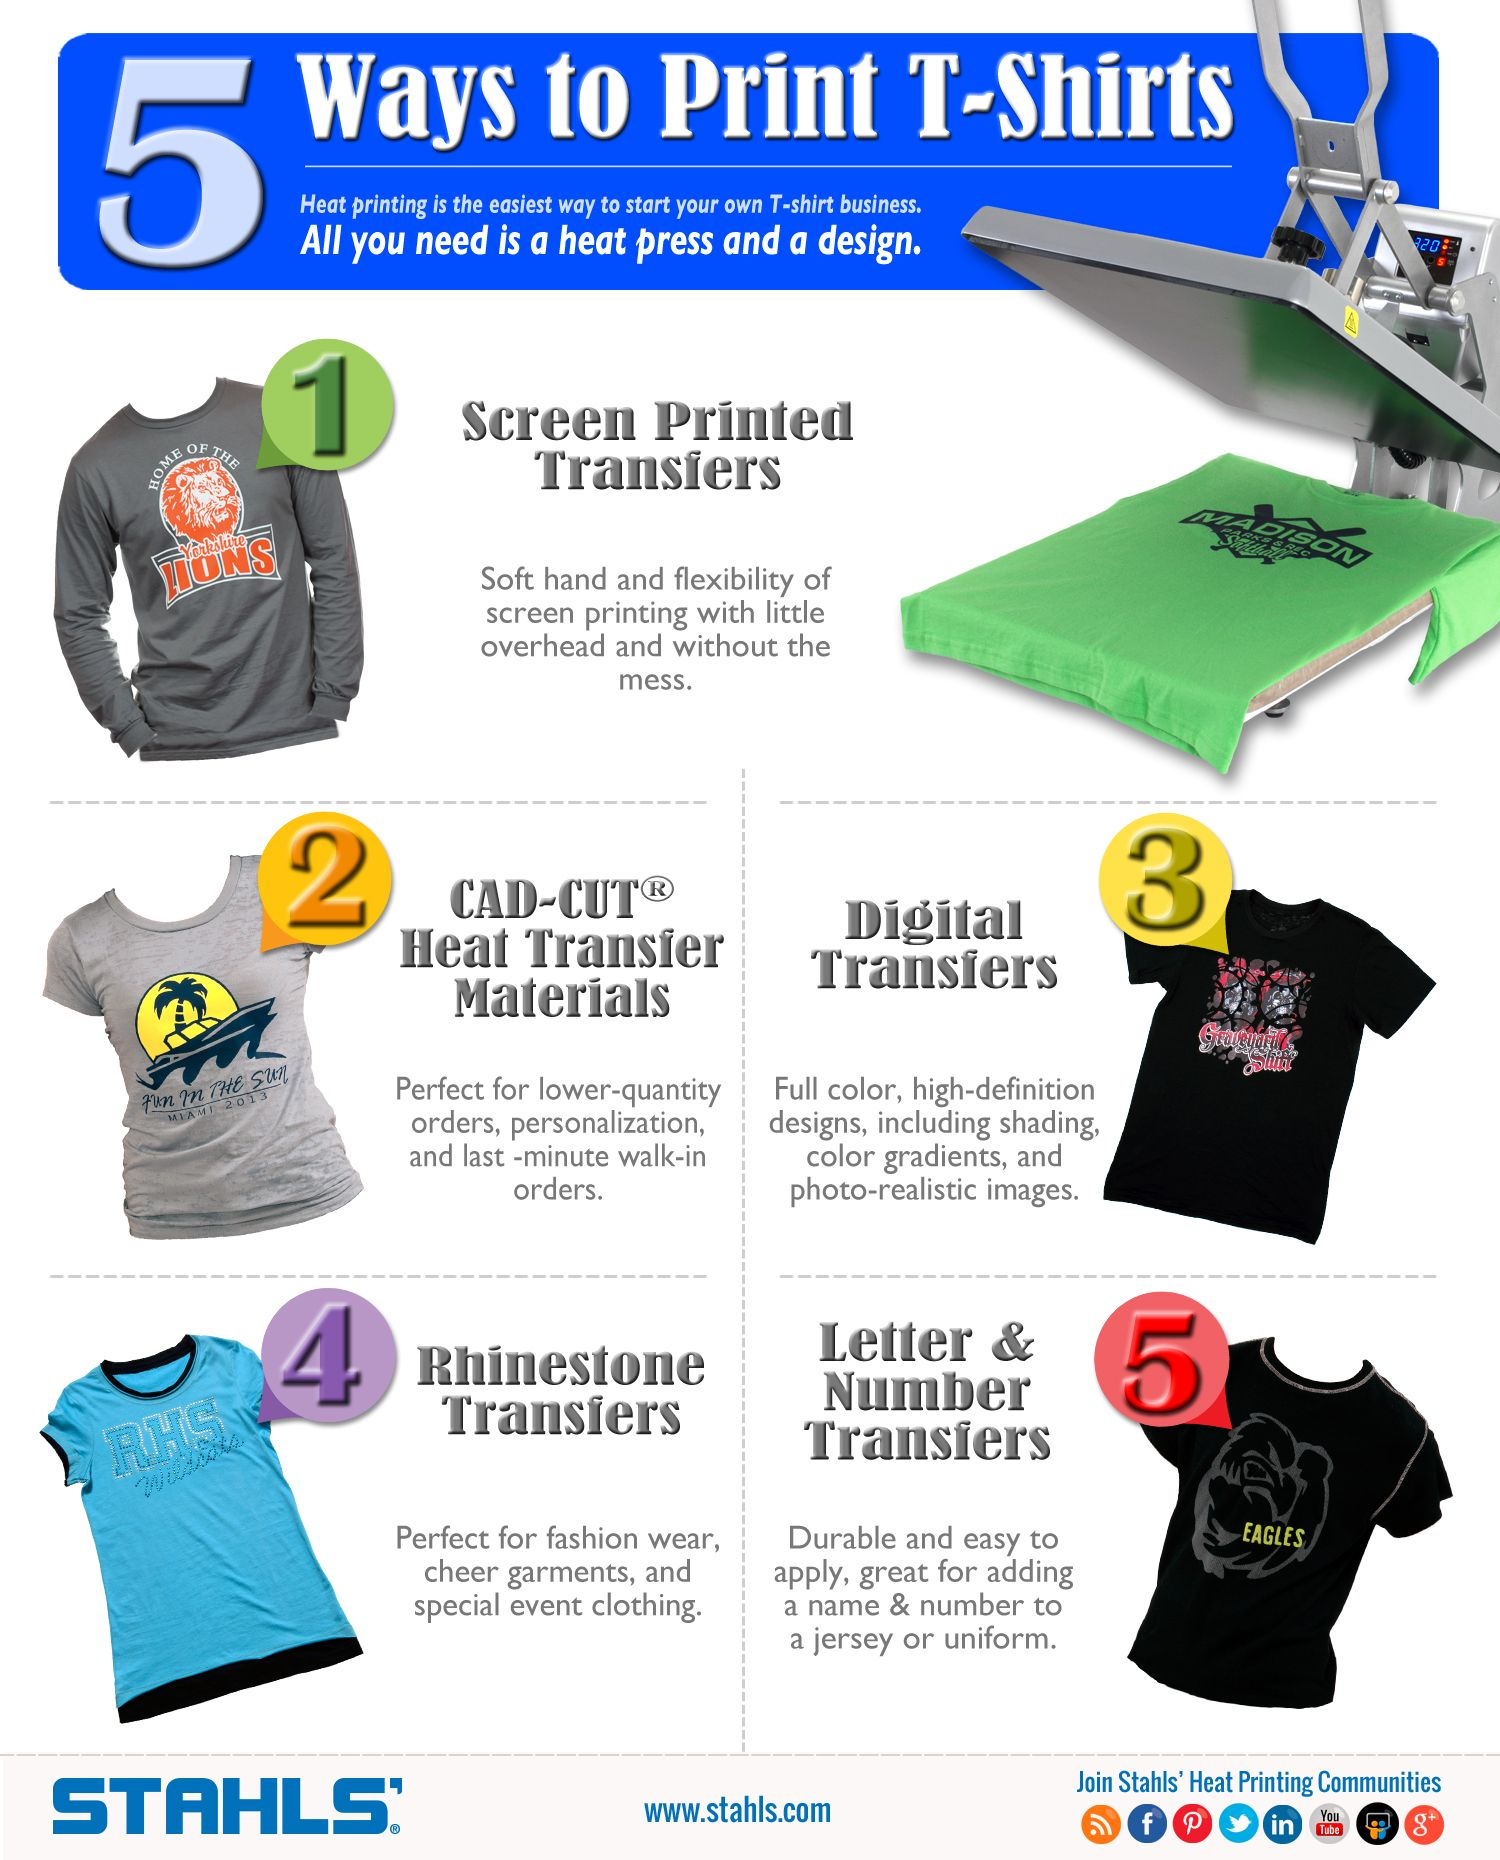 5b5b97aec 5 Ways to Print T-Shirts with a Heat Press | T-shirt | Diy shirt ...